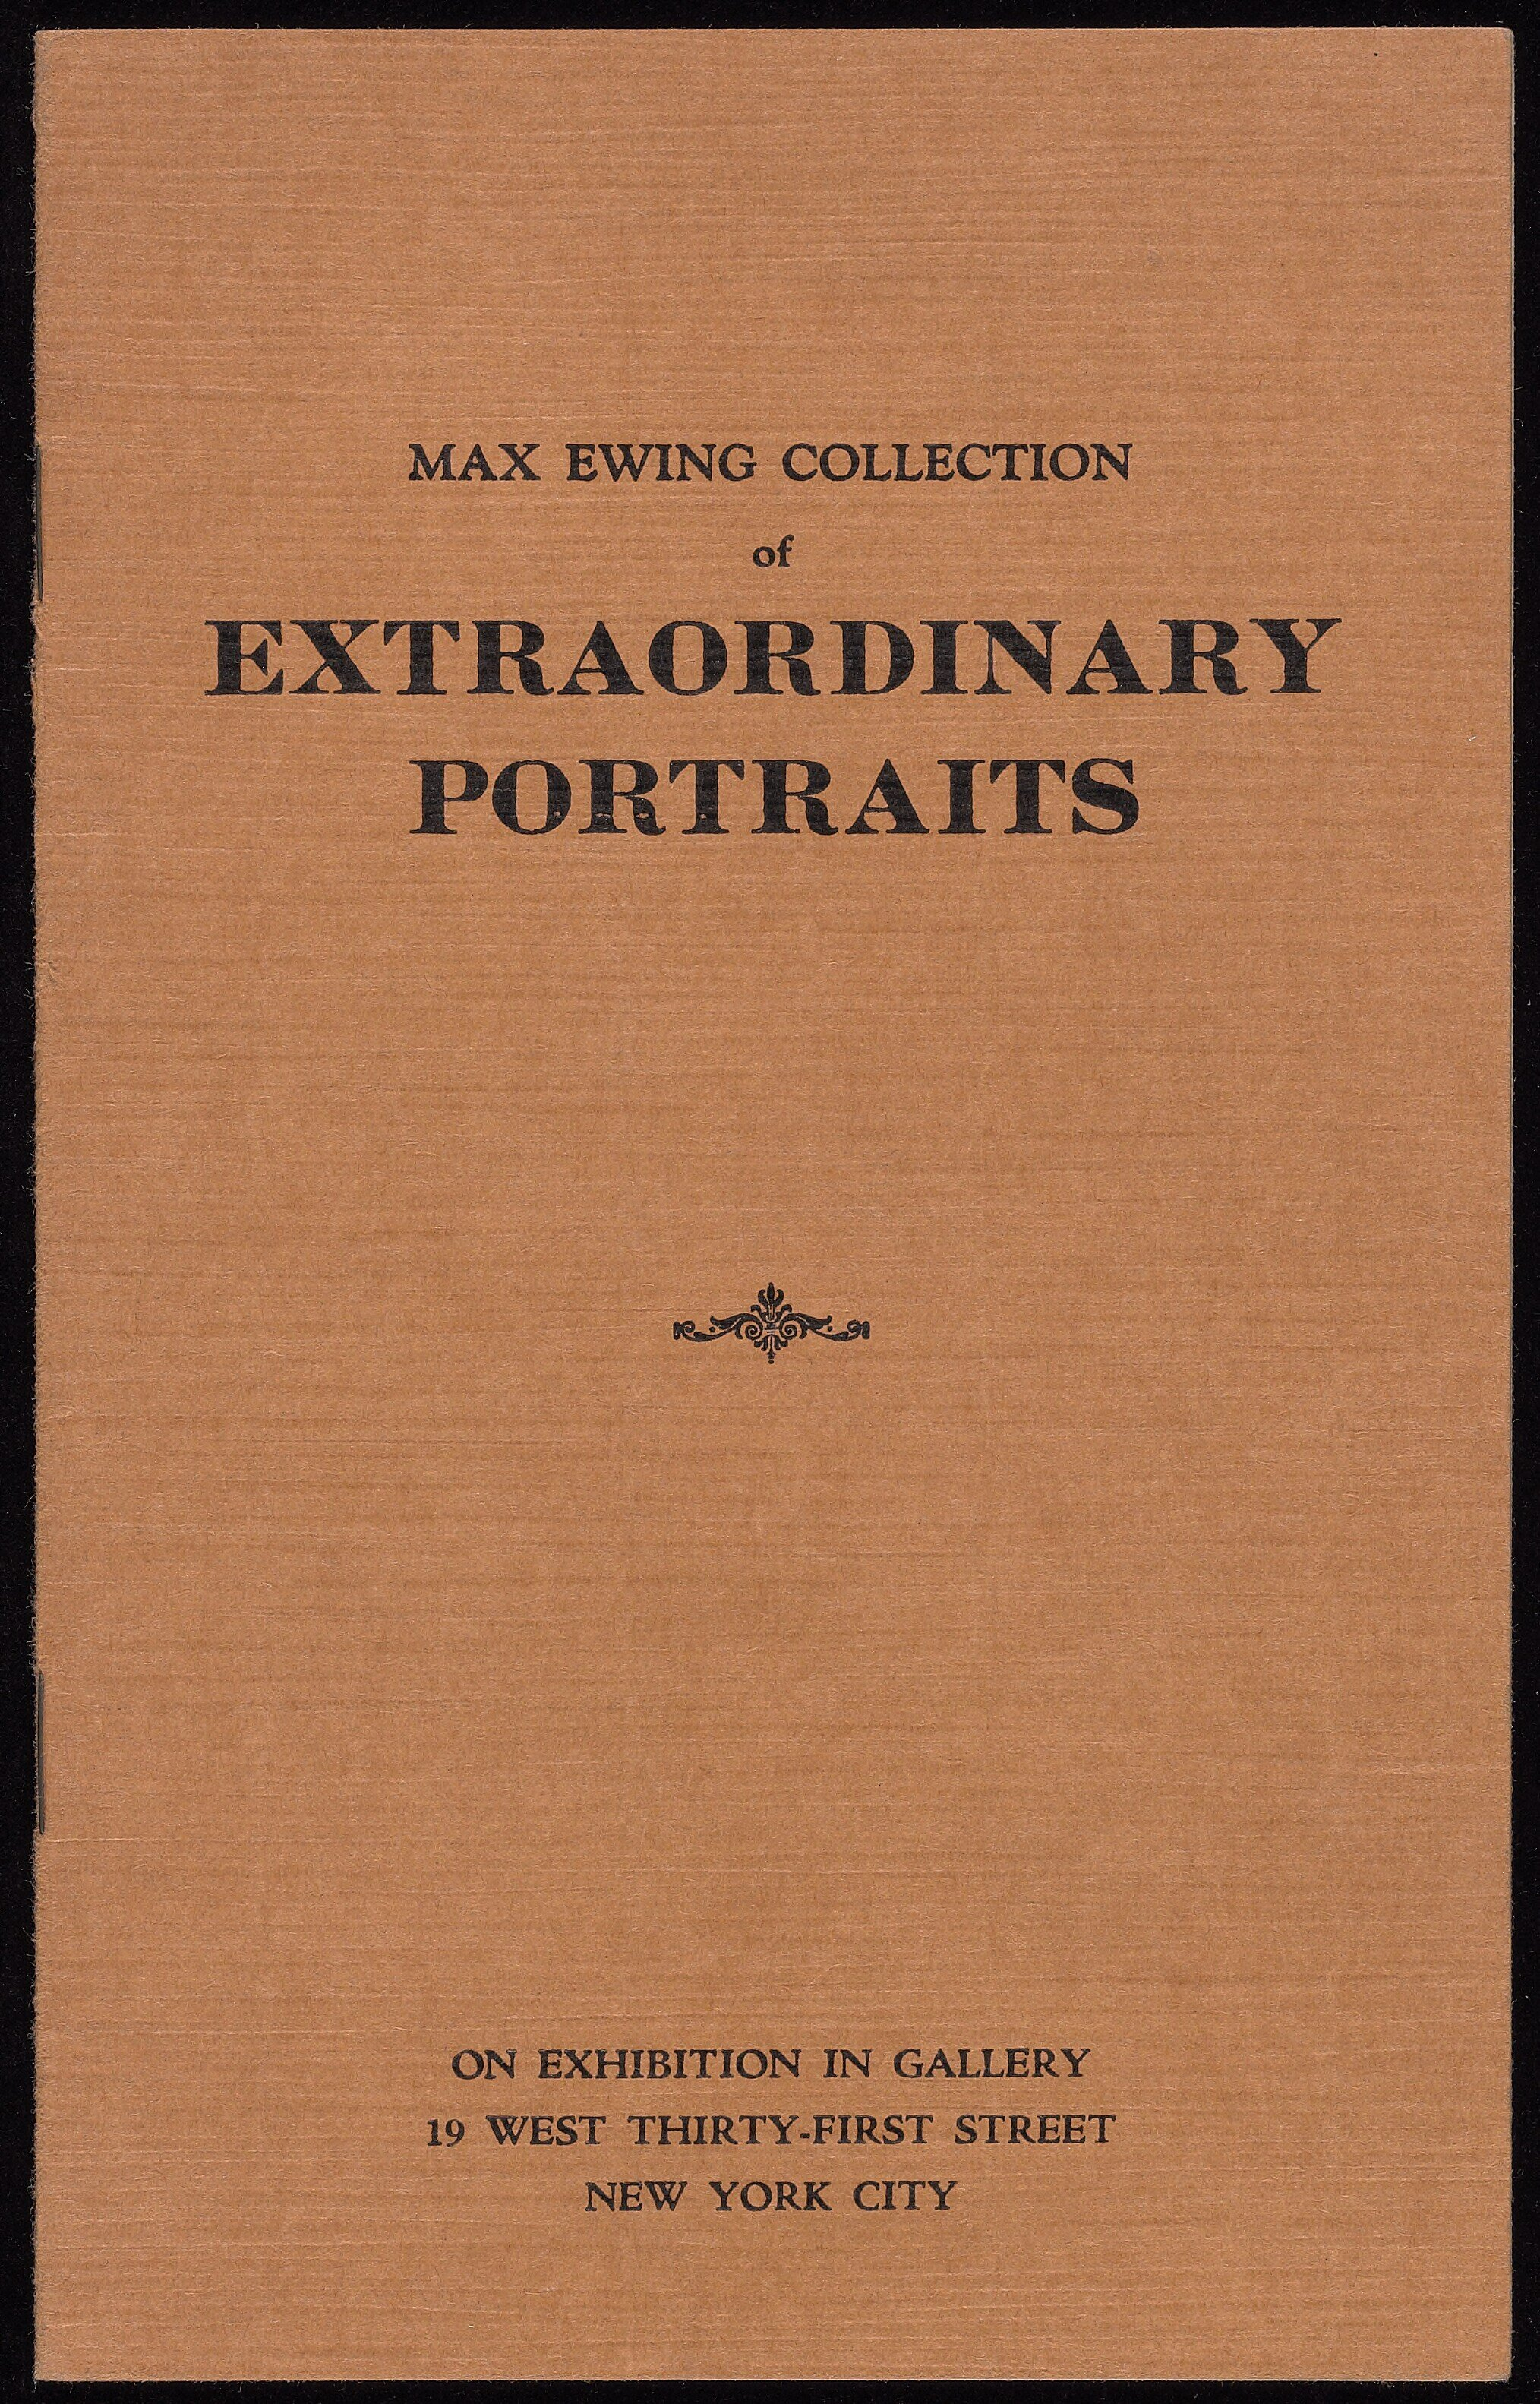 Figure 3, Exhibition Catalogue, Max Ewing Collection of Extraordinary Portraits, 1928. Courtesy: Beinecke Rare Book and Manuscript Library, Yale University, by permission of Wallace Ewing.